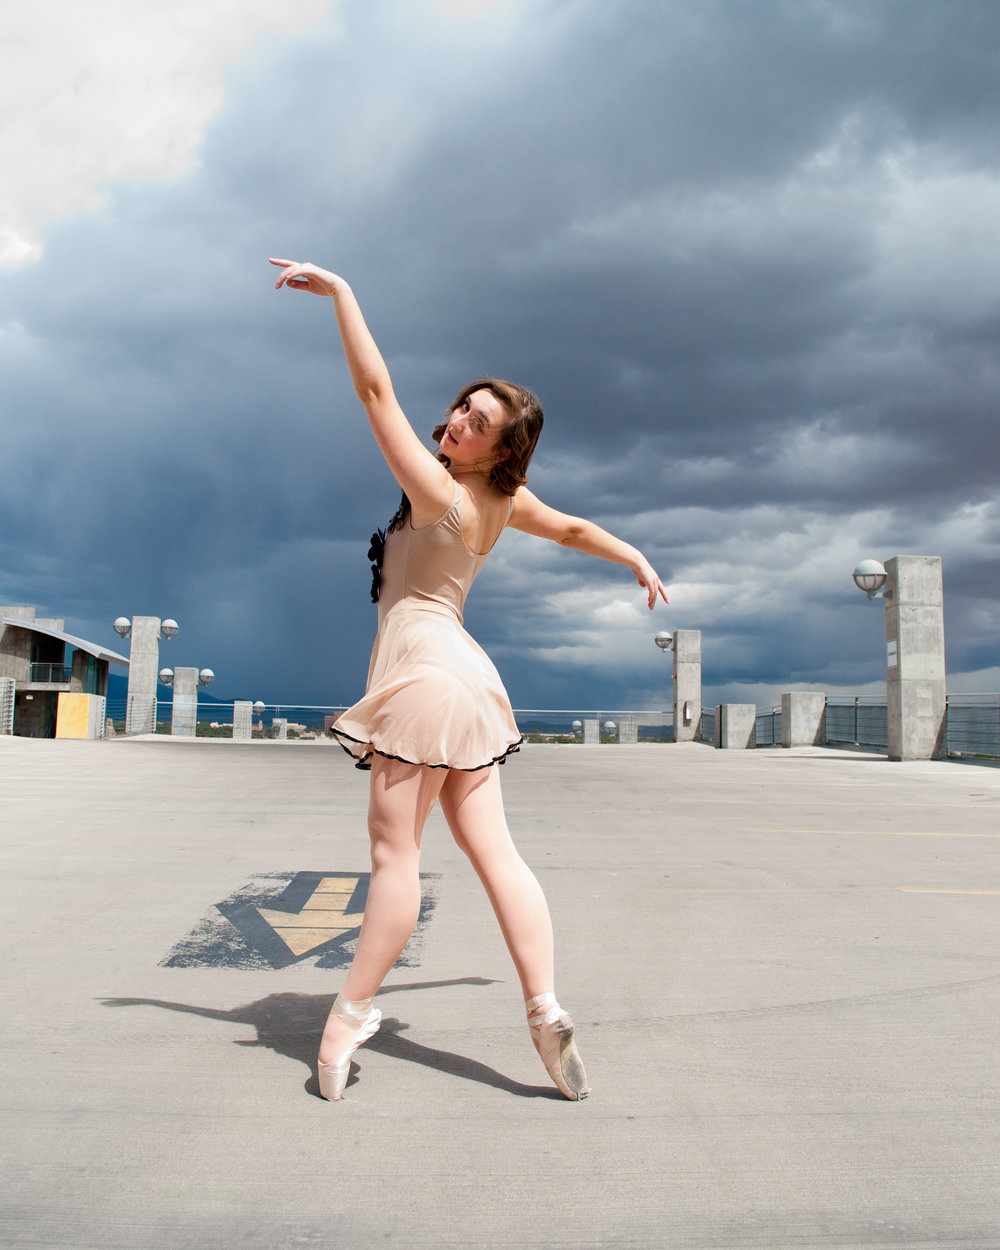 52-colorado-ballet-photographer-colorado-yoga-photographer-colorado-dance-photographer-denver-dance-photographer-denver-yoga-photographer-traveling-dance-photographerSophiaEdwards_Ballet_127.jpg